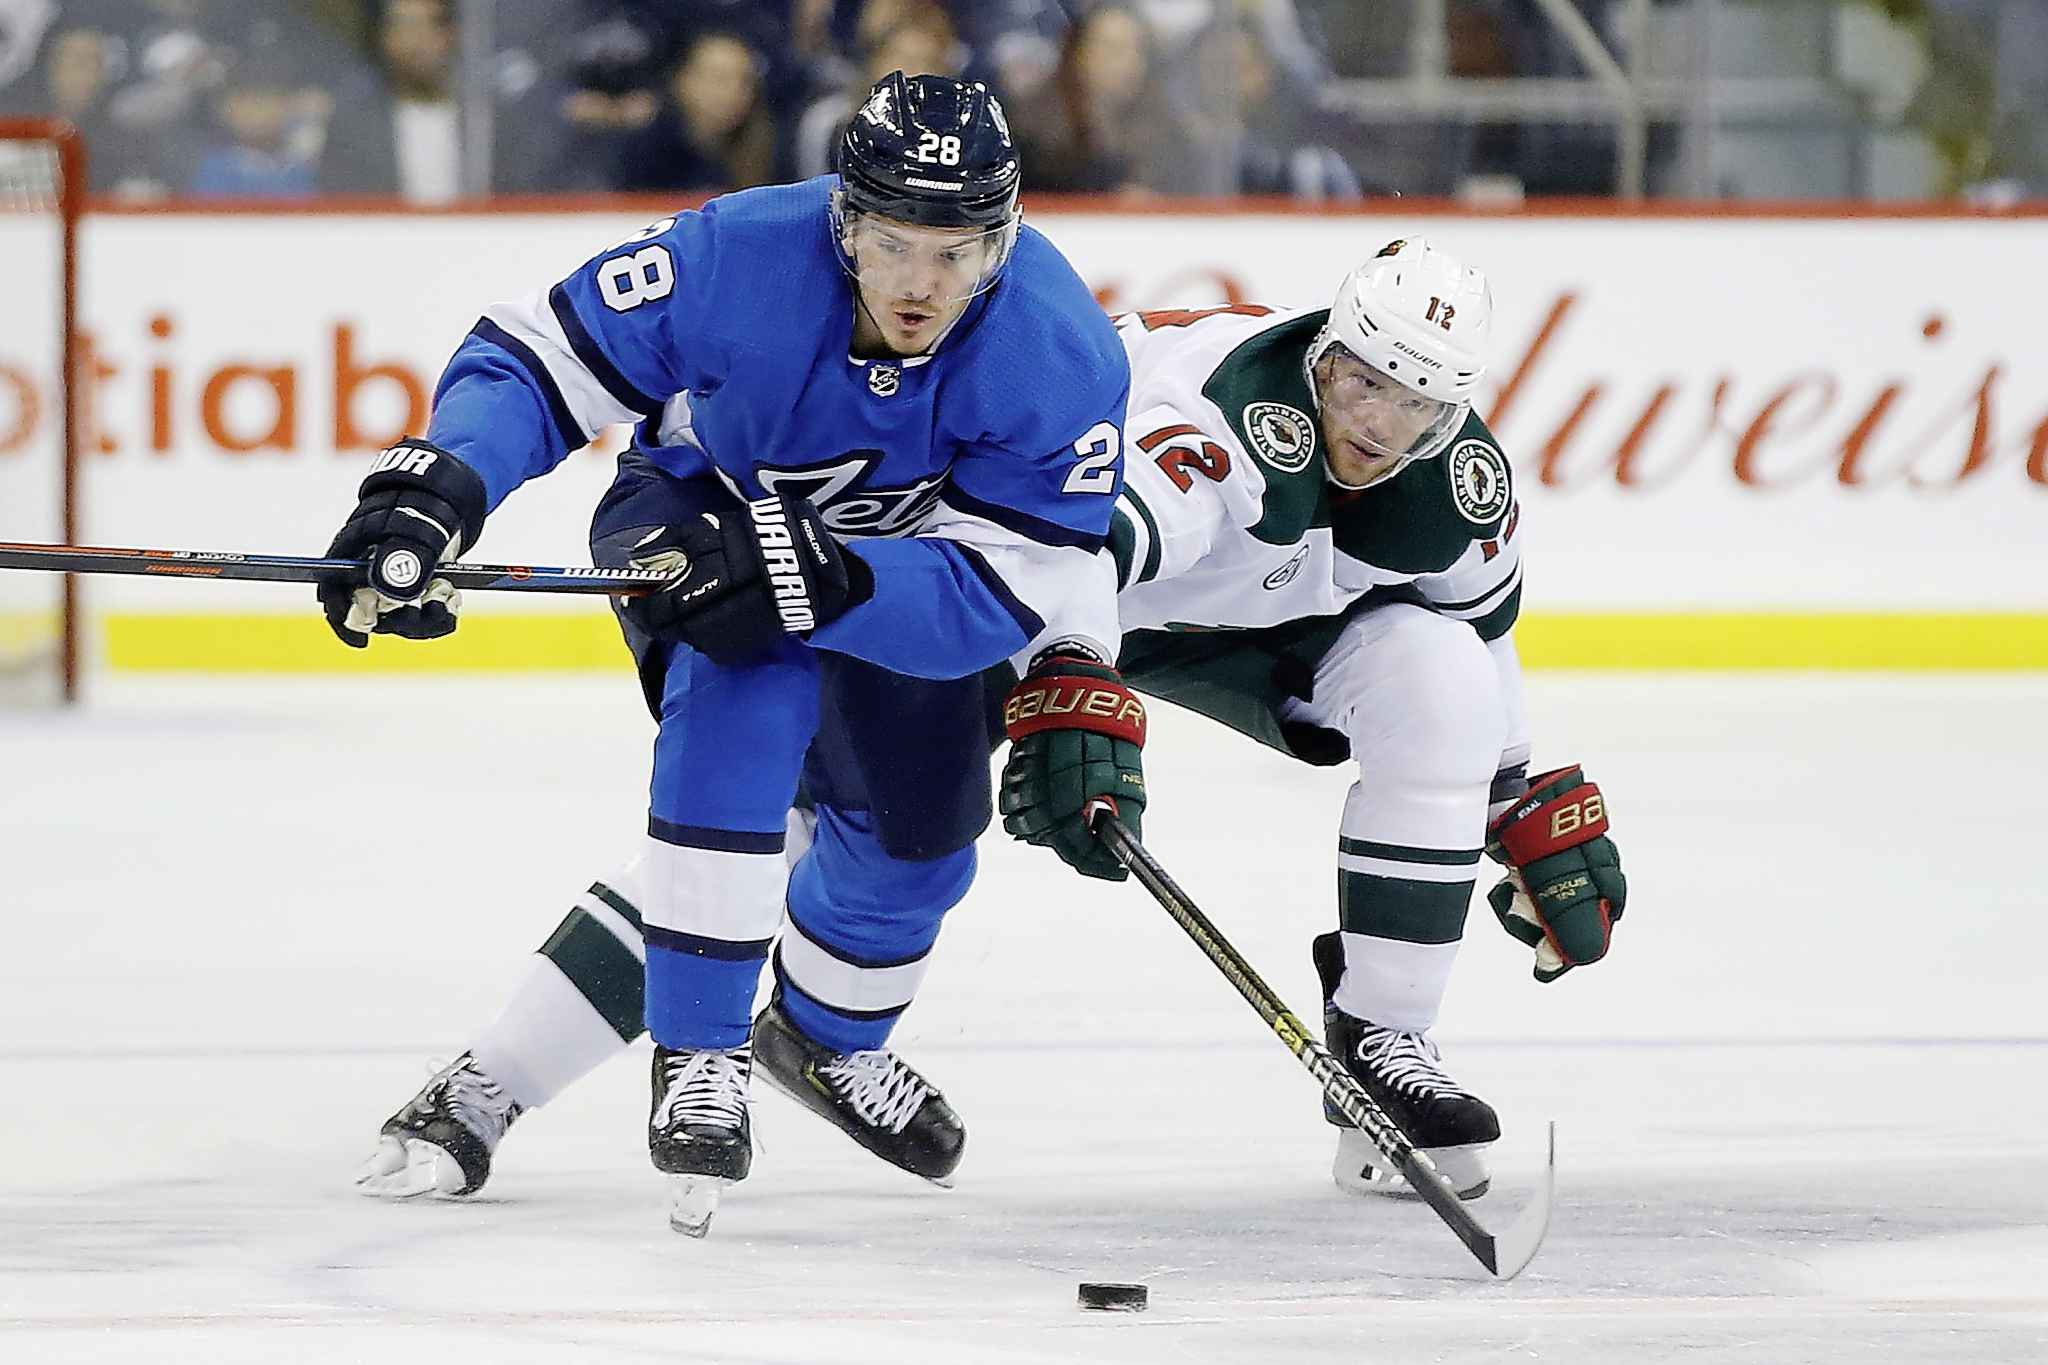 Winnipeg Jets' Jack Roslovic fends off Minnesota Wild's Eric Staal during game action in December. Despite being named the NHL's first star of the week after his first career hat-trick, the Jets' 2015 first-round draft pick also spent some time in the press box.